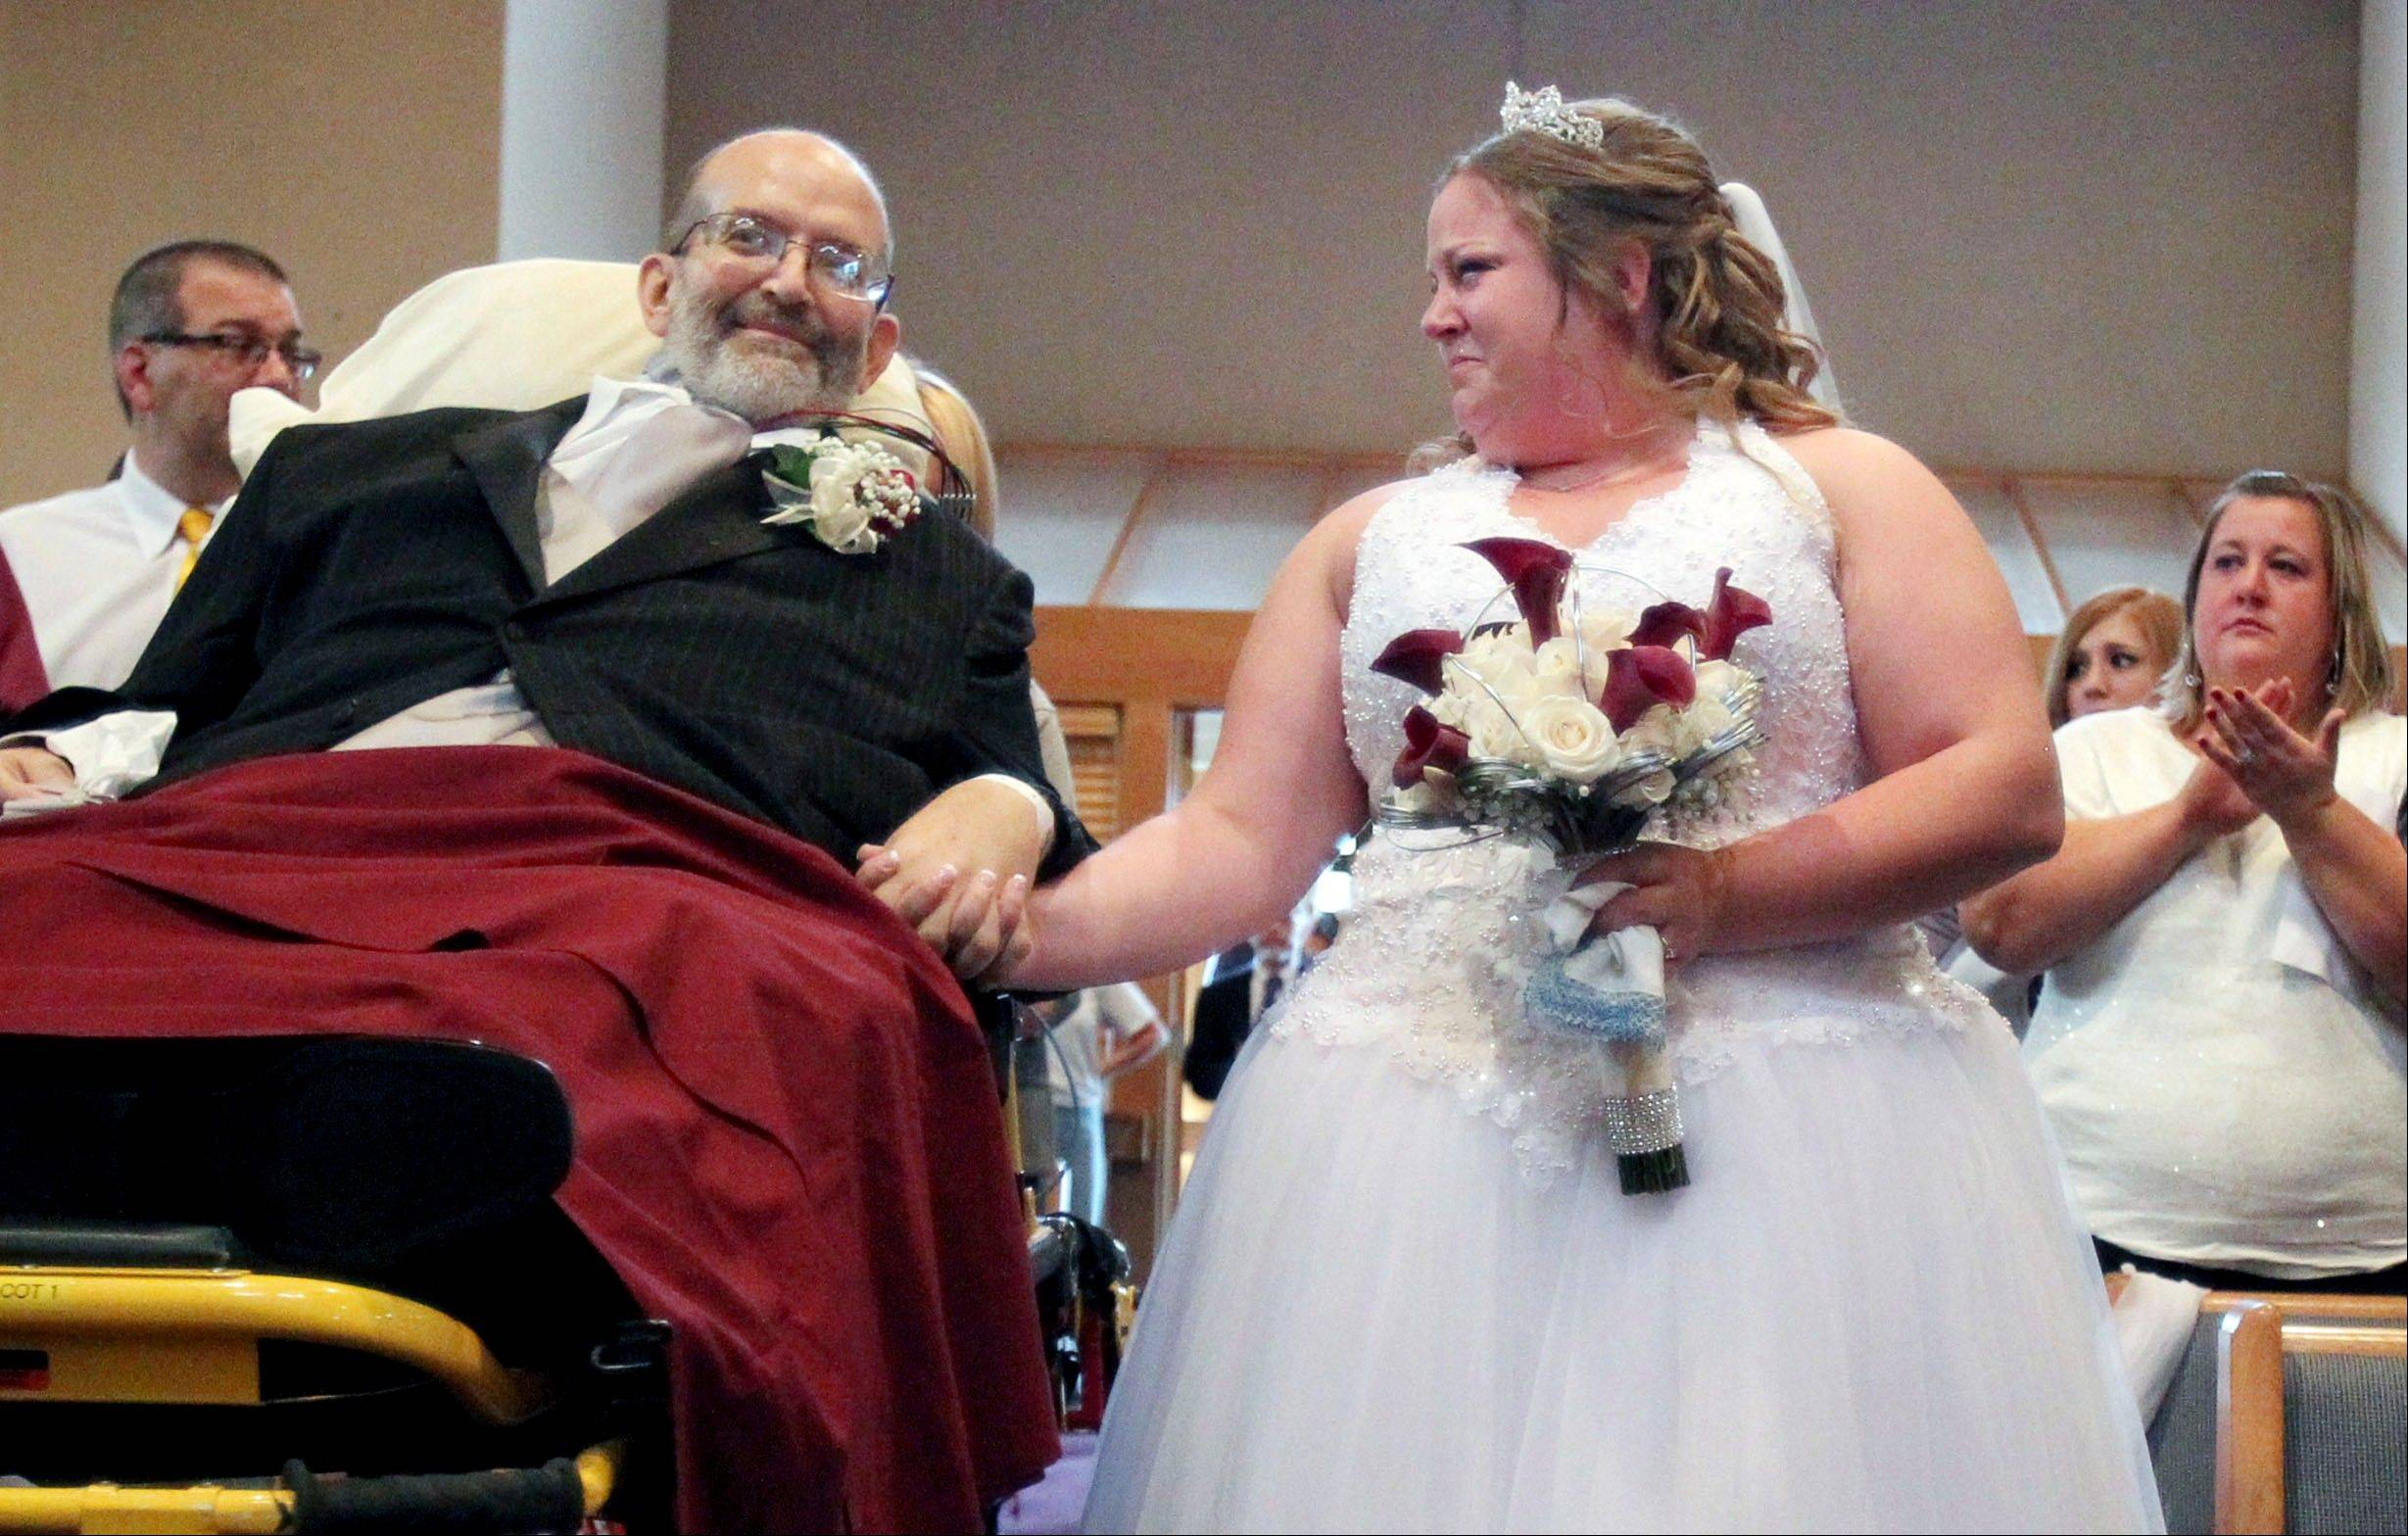 Bride Sarah Nagy, right, begins to cry as she is escorted by her father, Scott, down the aisle during her wedding ceremony Oct. 12, 2013 at First Lutheran Church in Strongsville, Ohio. University Hospital sent a medical team along with Scott, who is bound to his bed, and the ambulance ride to the church was donated by Physicians Medical Transport.